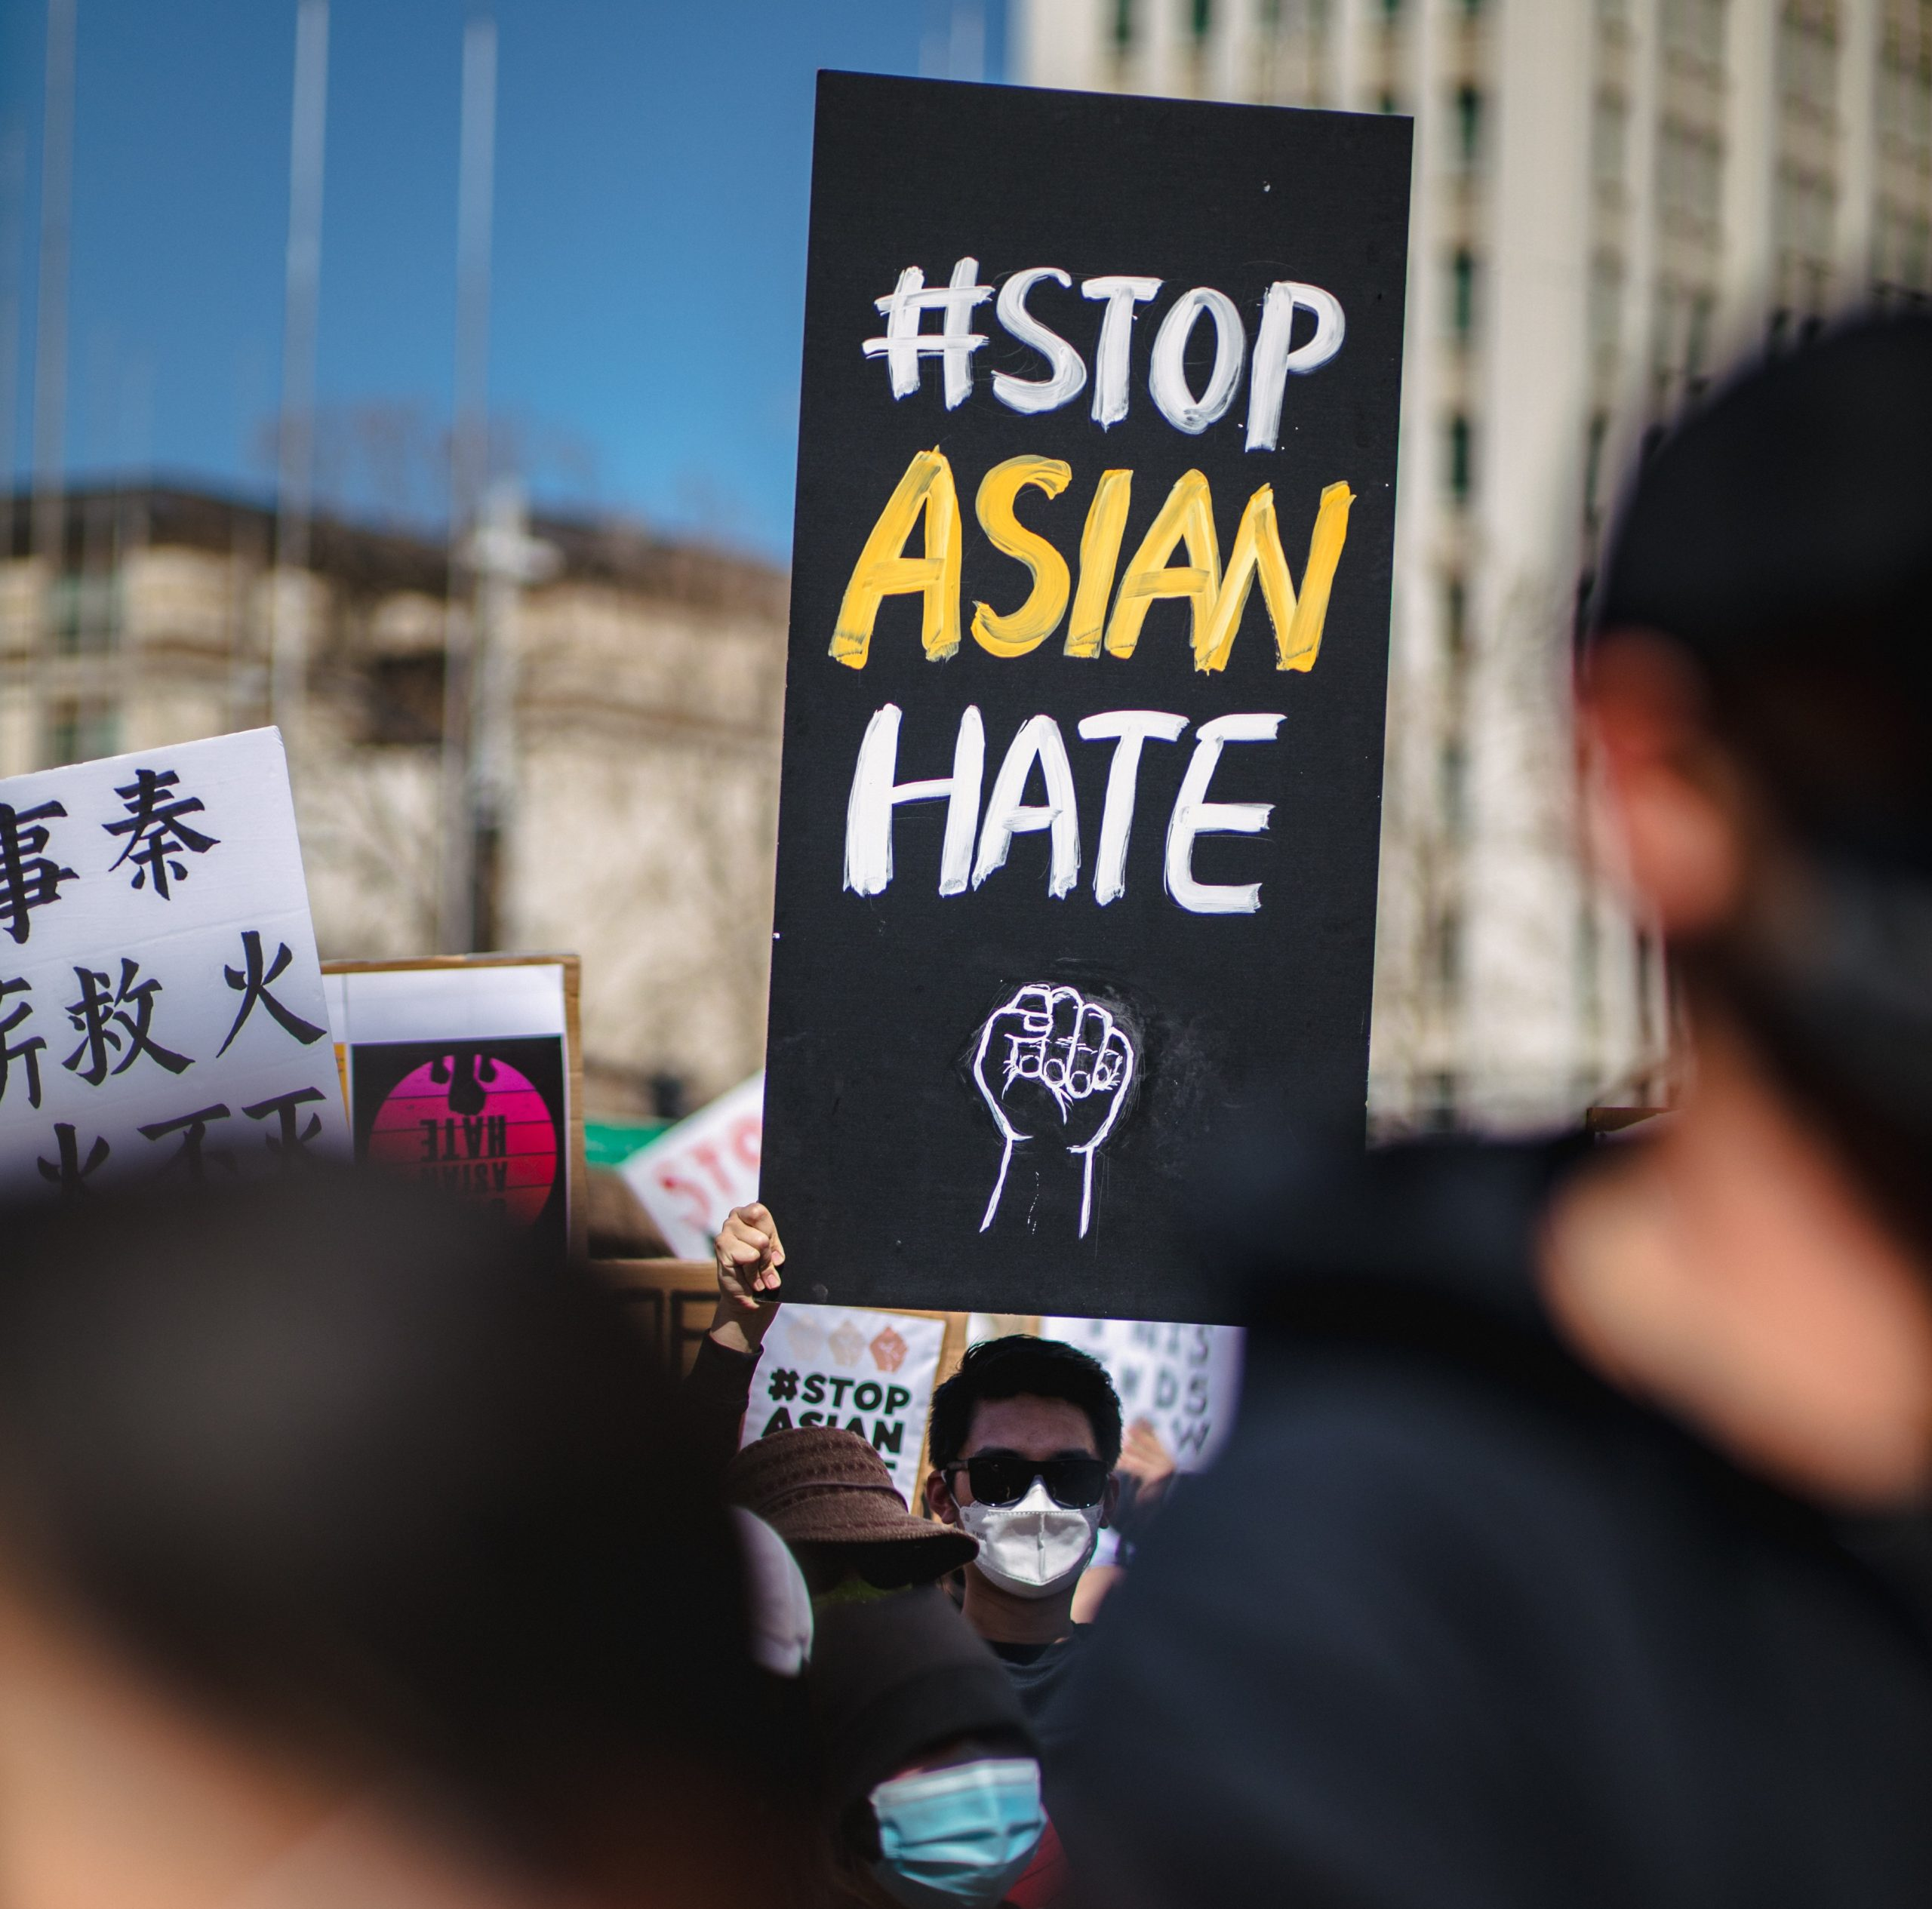 """A man with pale skin, black short hair, dark sunglasses, and a white mask stands in a crowd of protestors holding a rectangular black sign that says in all caps white and yellow letters """"#Stop Asian Hate"""" with an outline of a fist below it.t"""